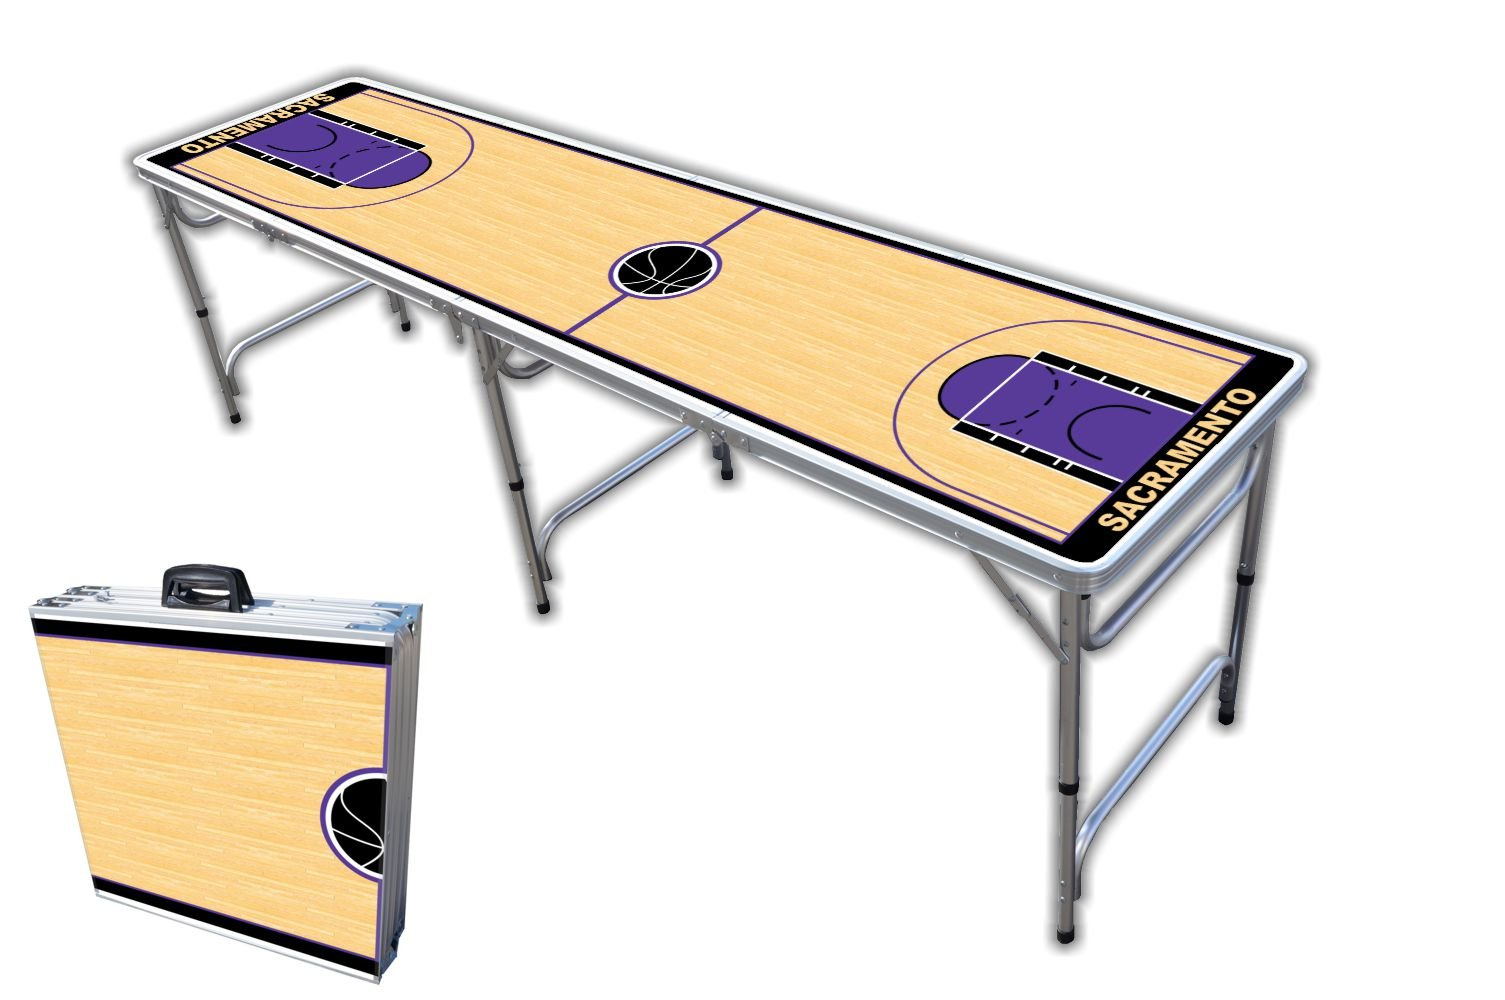 8-Foot Professional Beer Pong Table - Sacramento Basketball Court Graphic by PartyPongTables.com